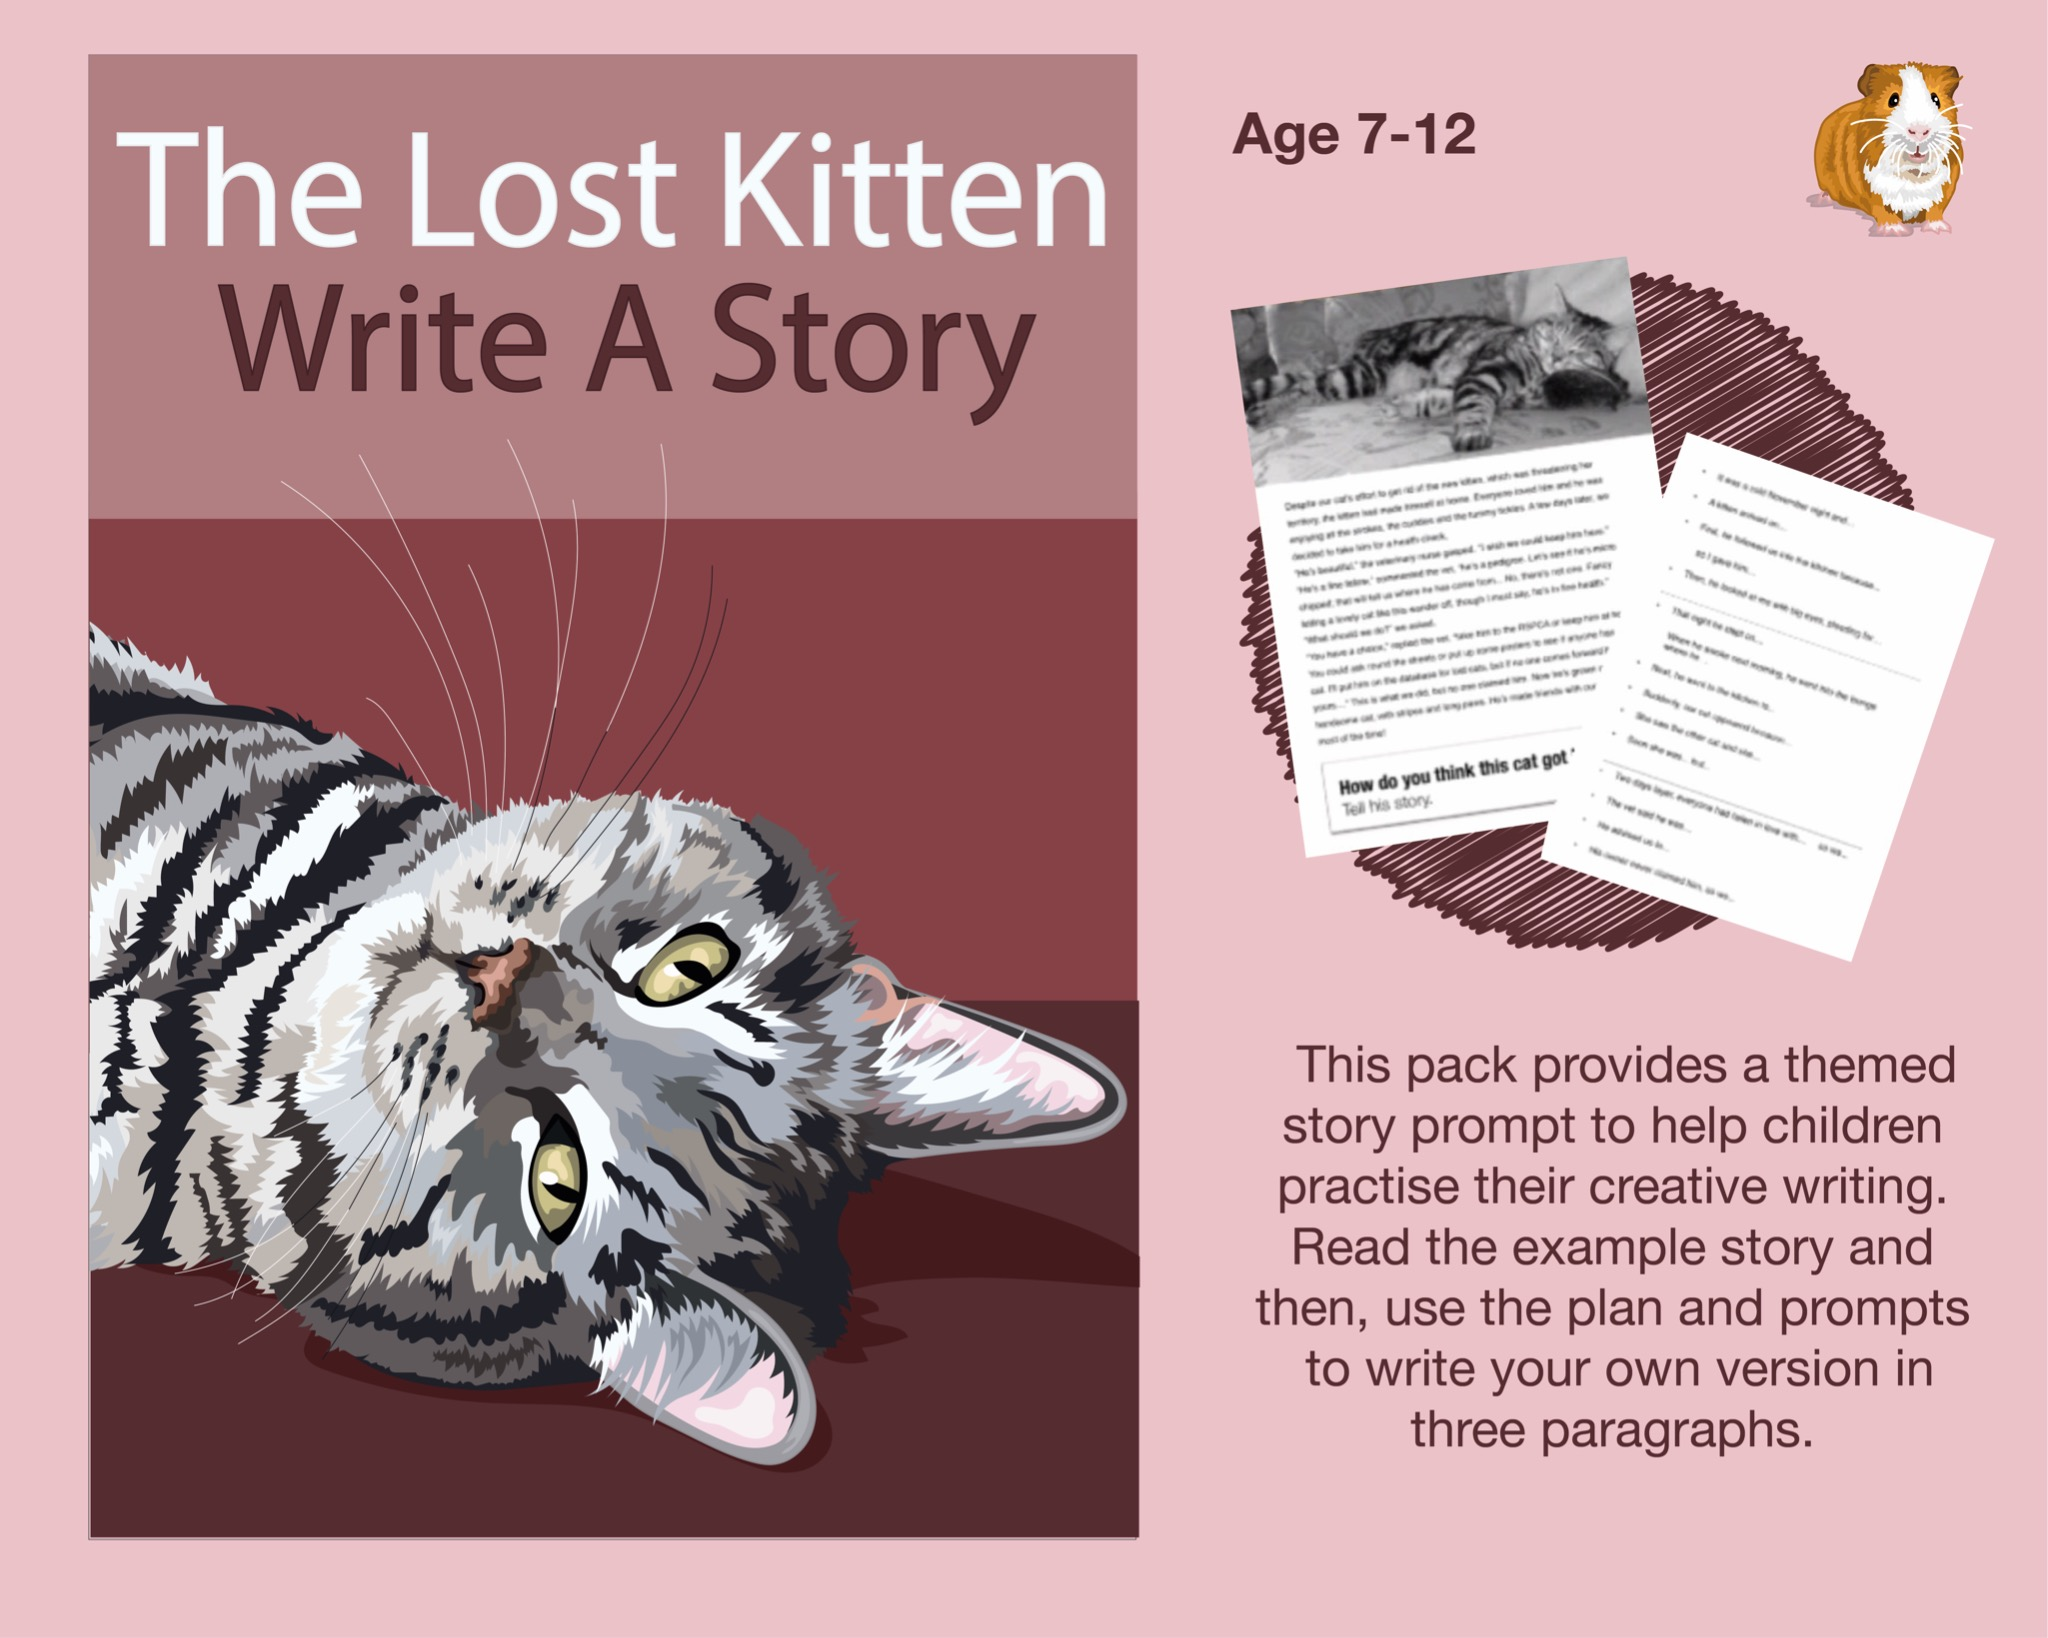 Write A Story Called 'The Lost Kitten' 7-12 years)